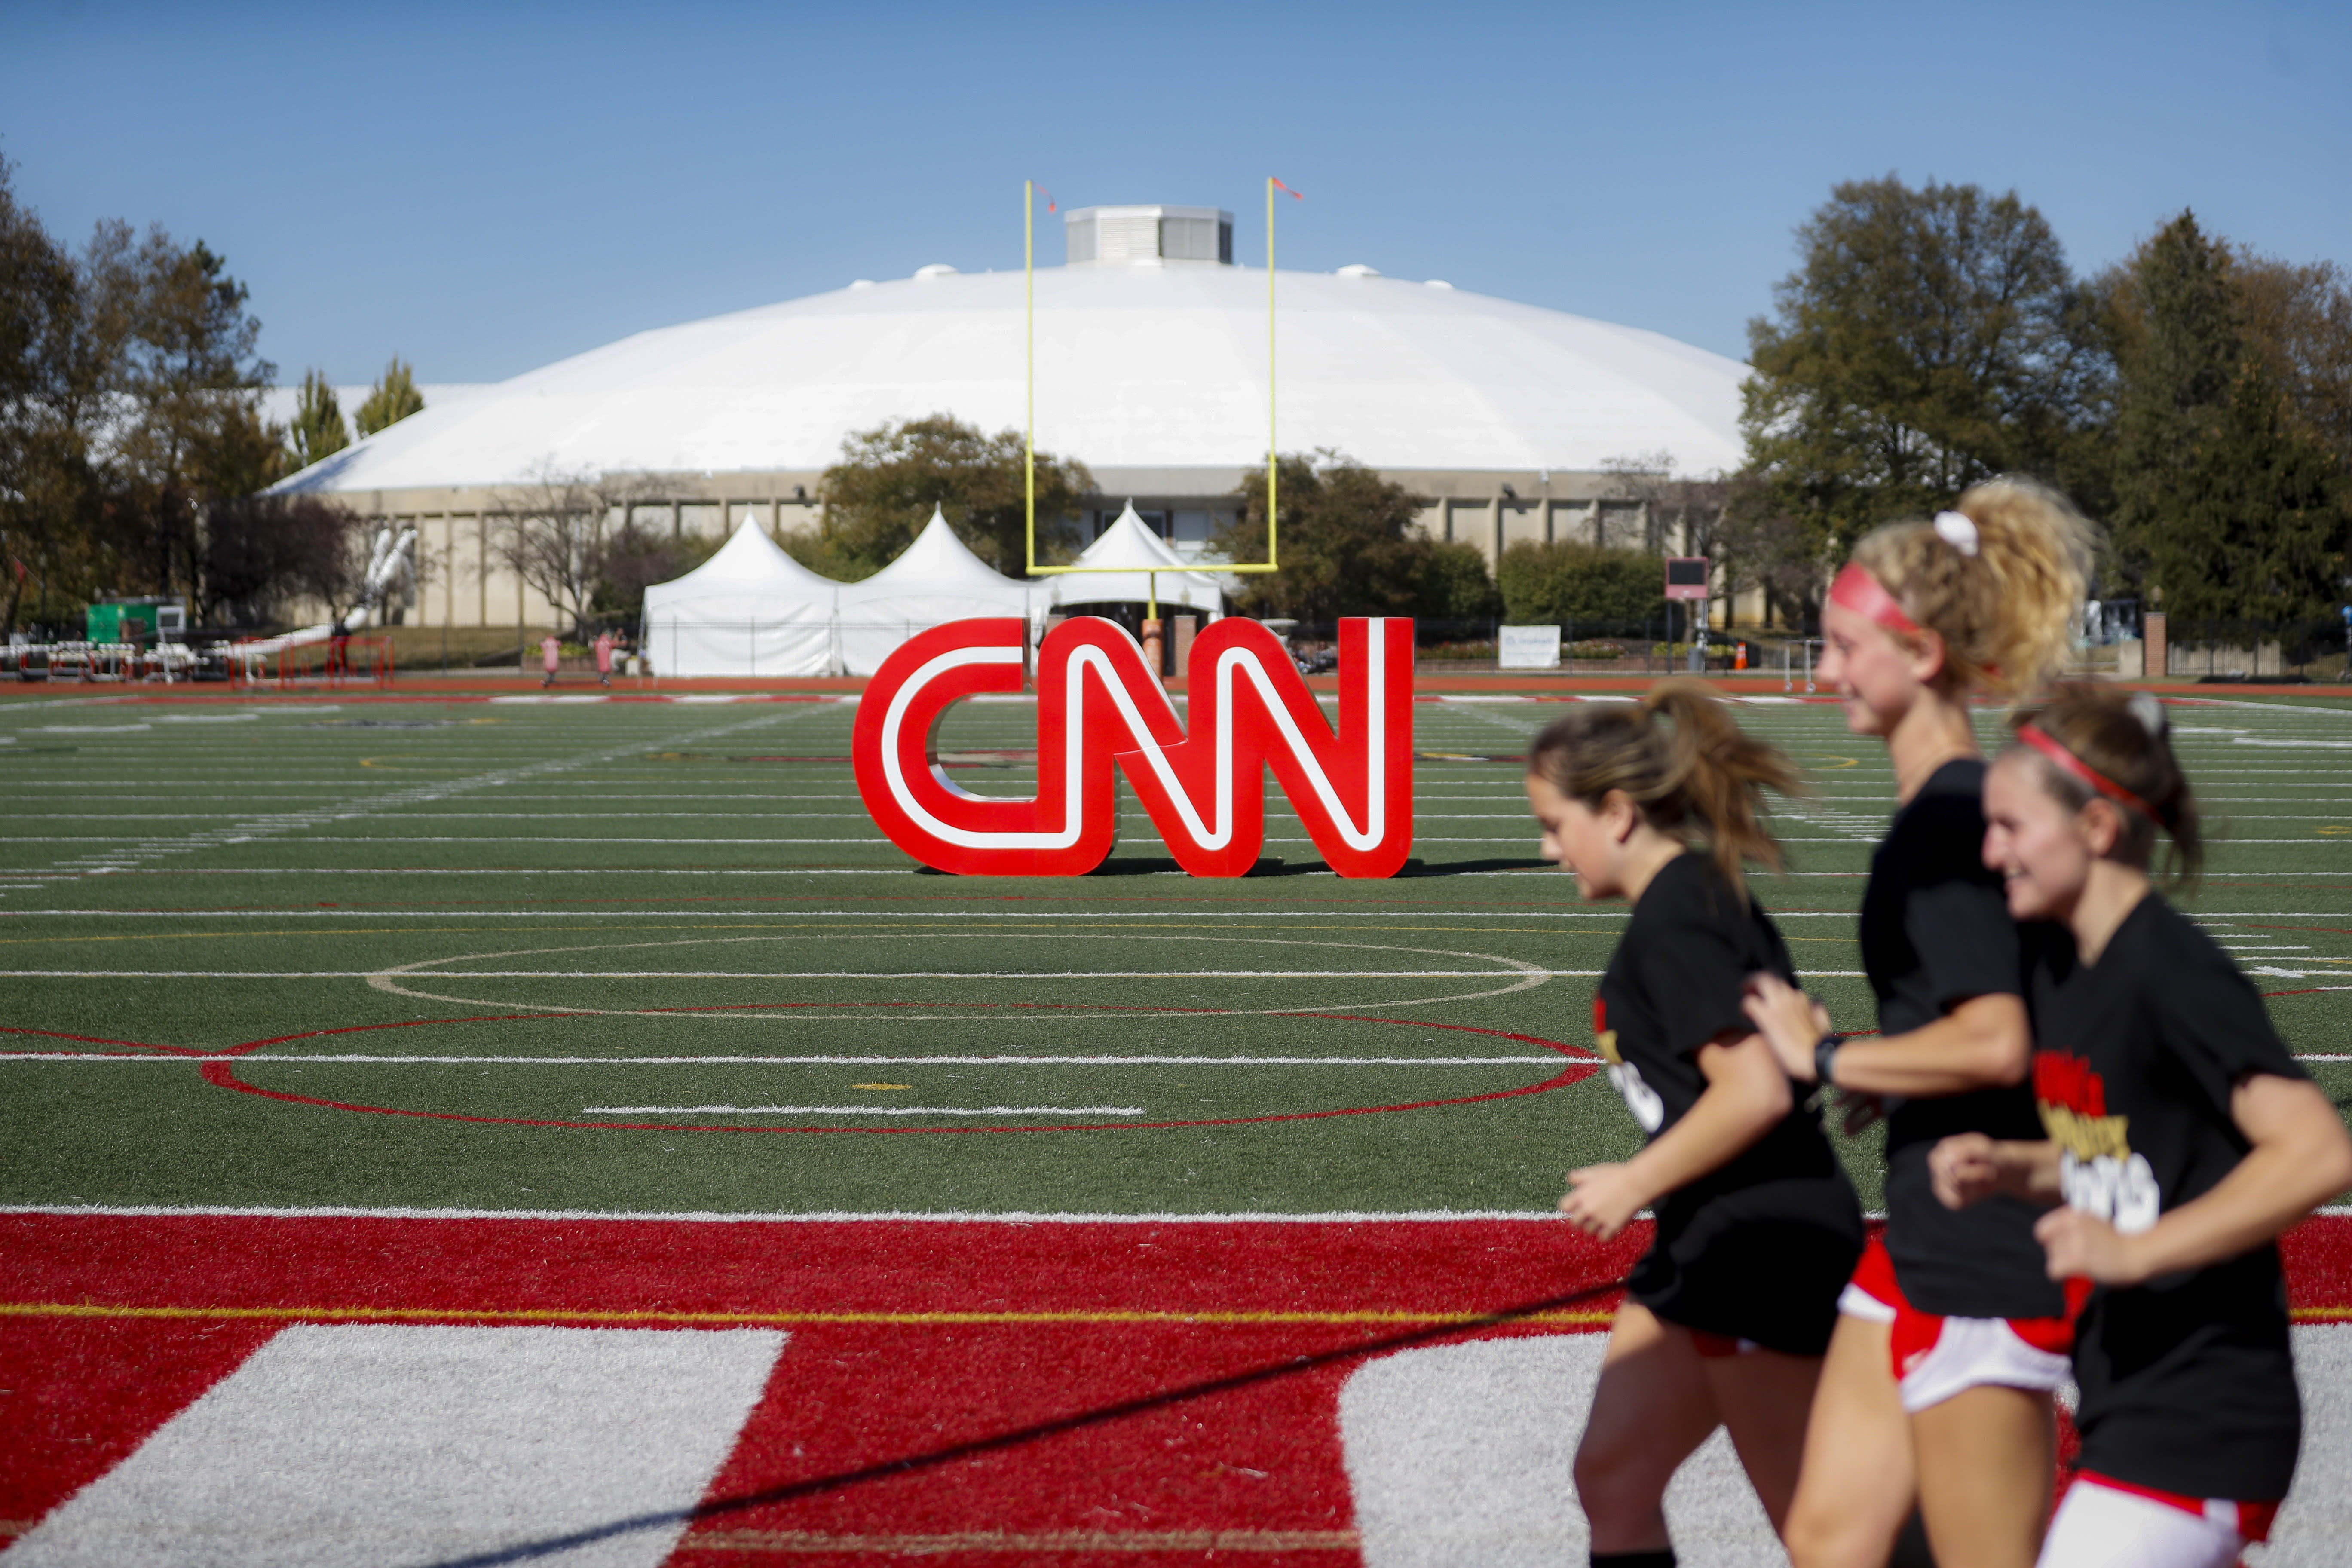 Student athletes pass a CNN sign on an athletic field outside the Clements Recreation Center where the CNN  New York Times will host the Democratic presidential primary debate at Otterbein University Monday Oct. 14 2019 in Westerville Ohio. (AP